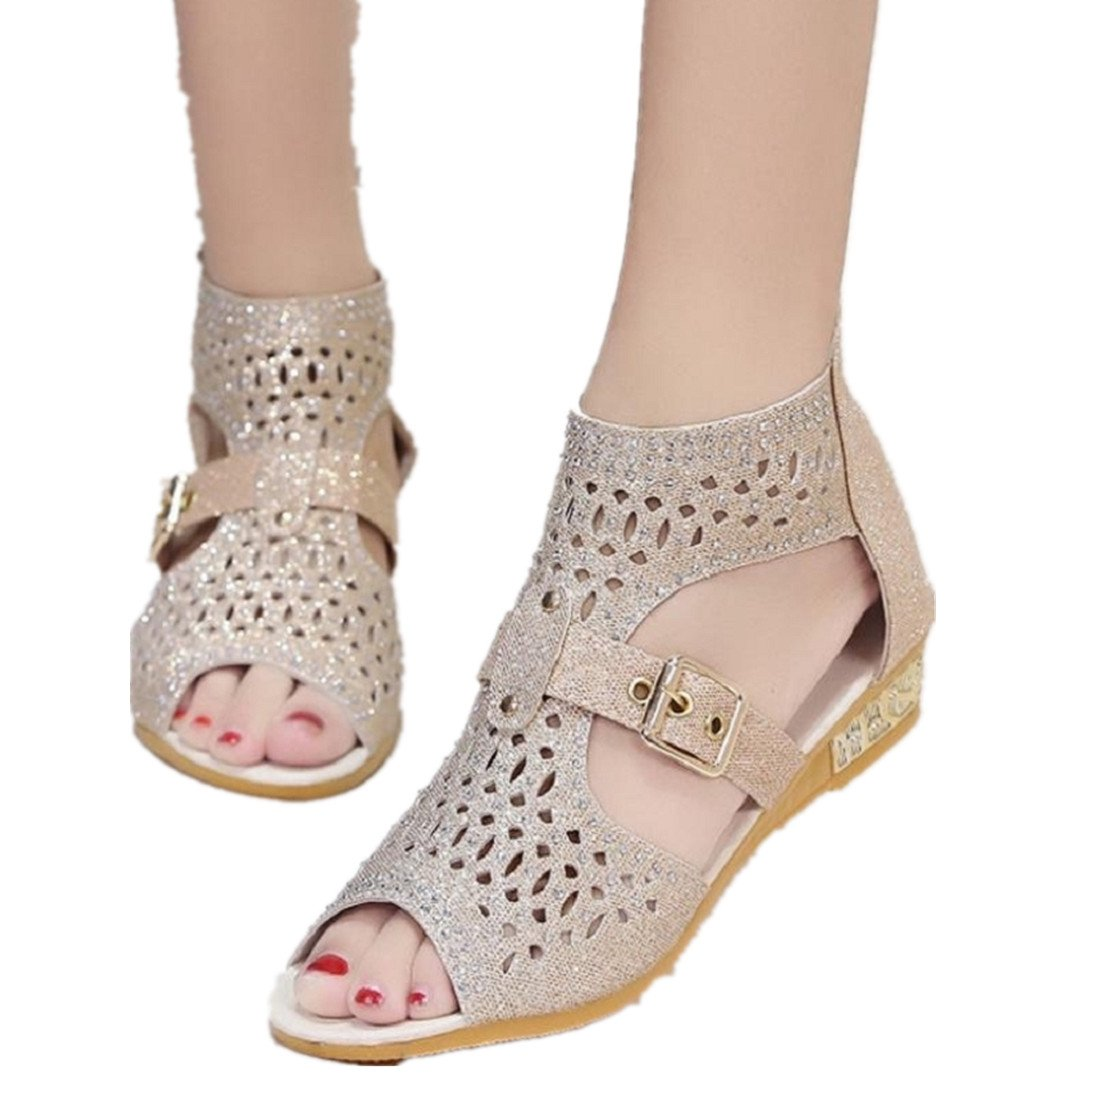 Fheaven Women Summer Wedge Sandals Hollow Out Side Pumps Sexy Buckle Strap Shoes (China size:38(US:6.5), Beige)